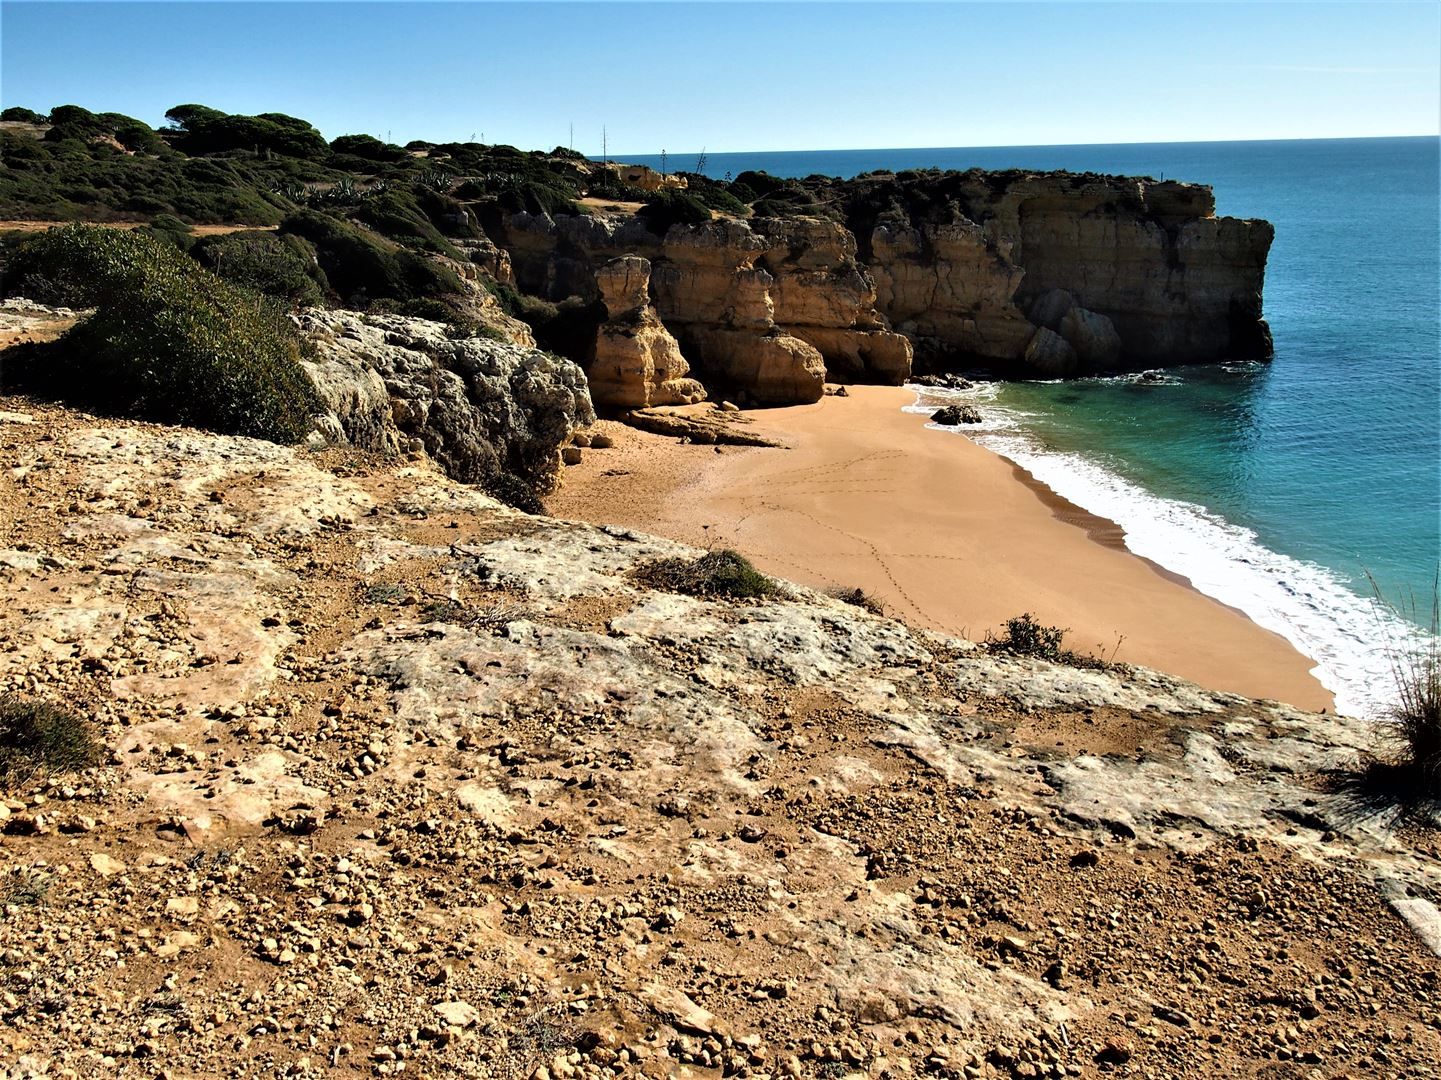 Praia da Coelha beach, west of Albufeira